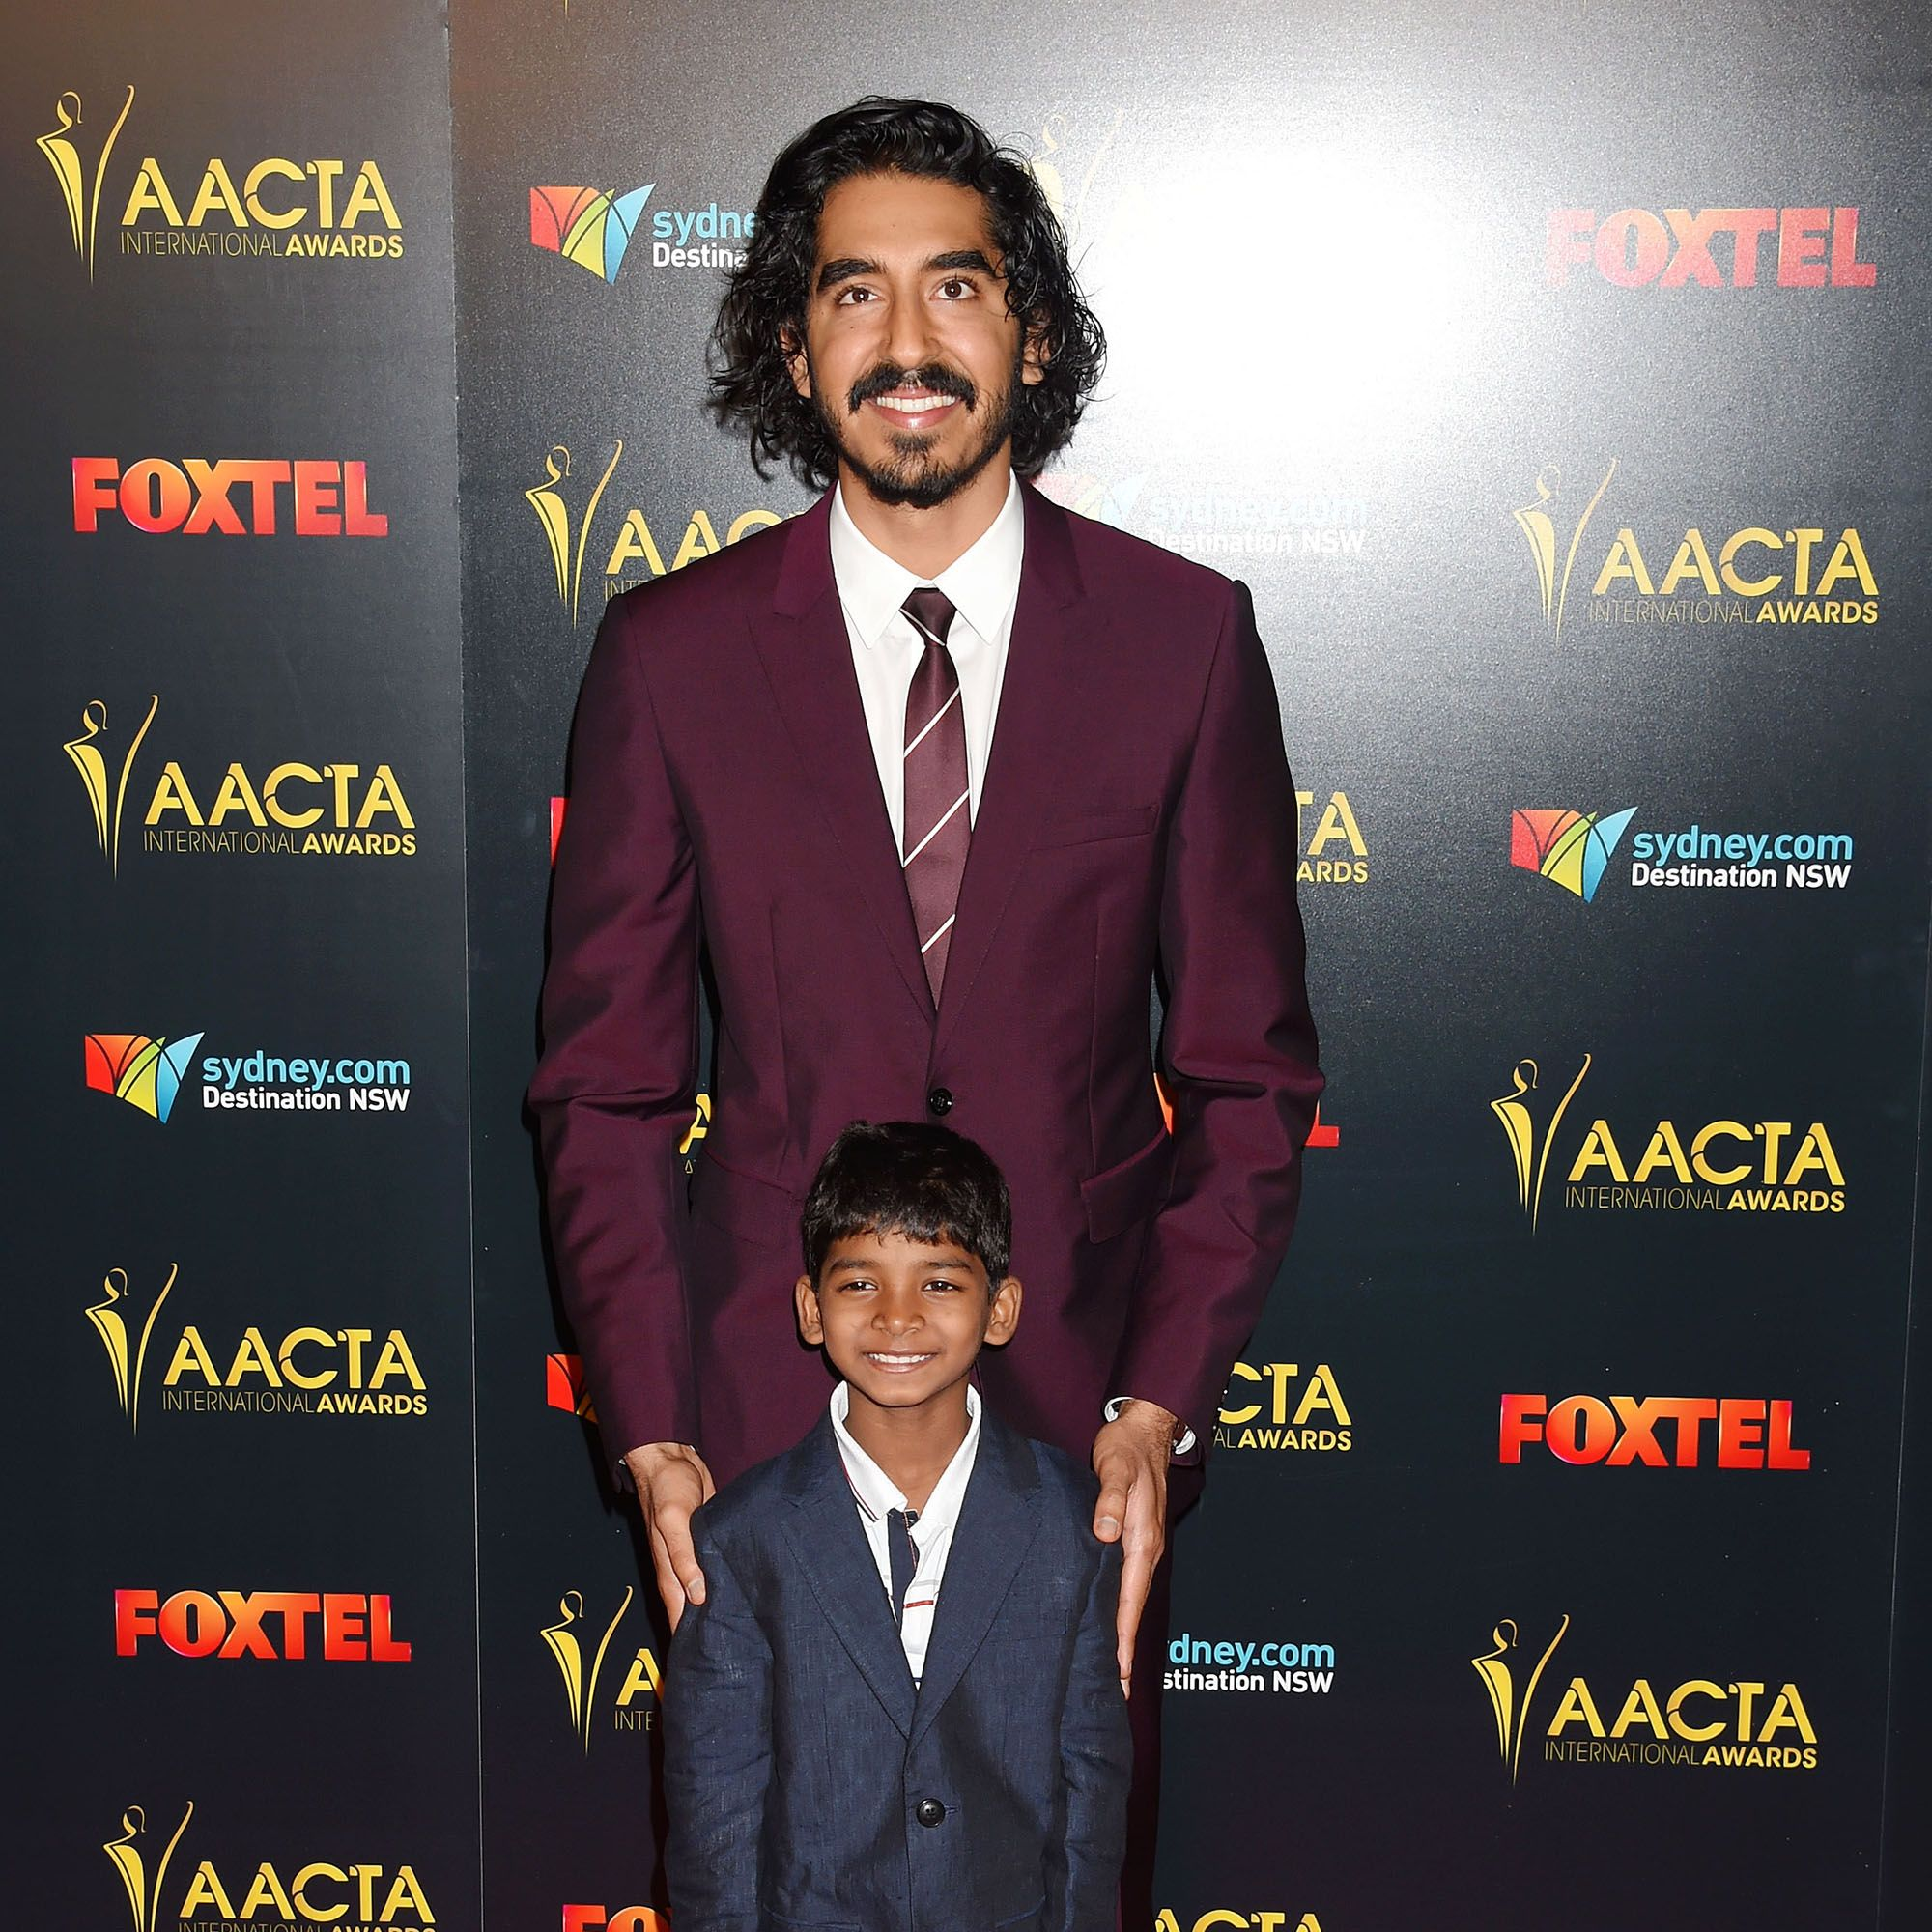 <p>At the AACTA International&nbsp&#x3B;Awards</p>